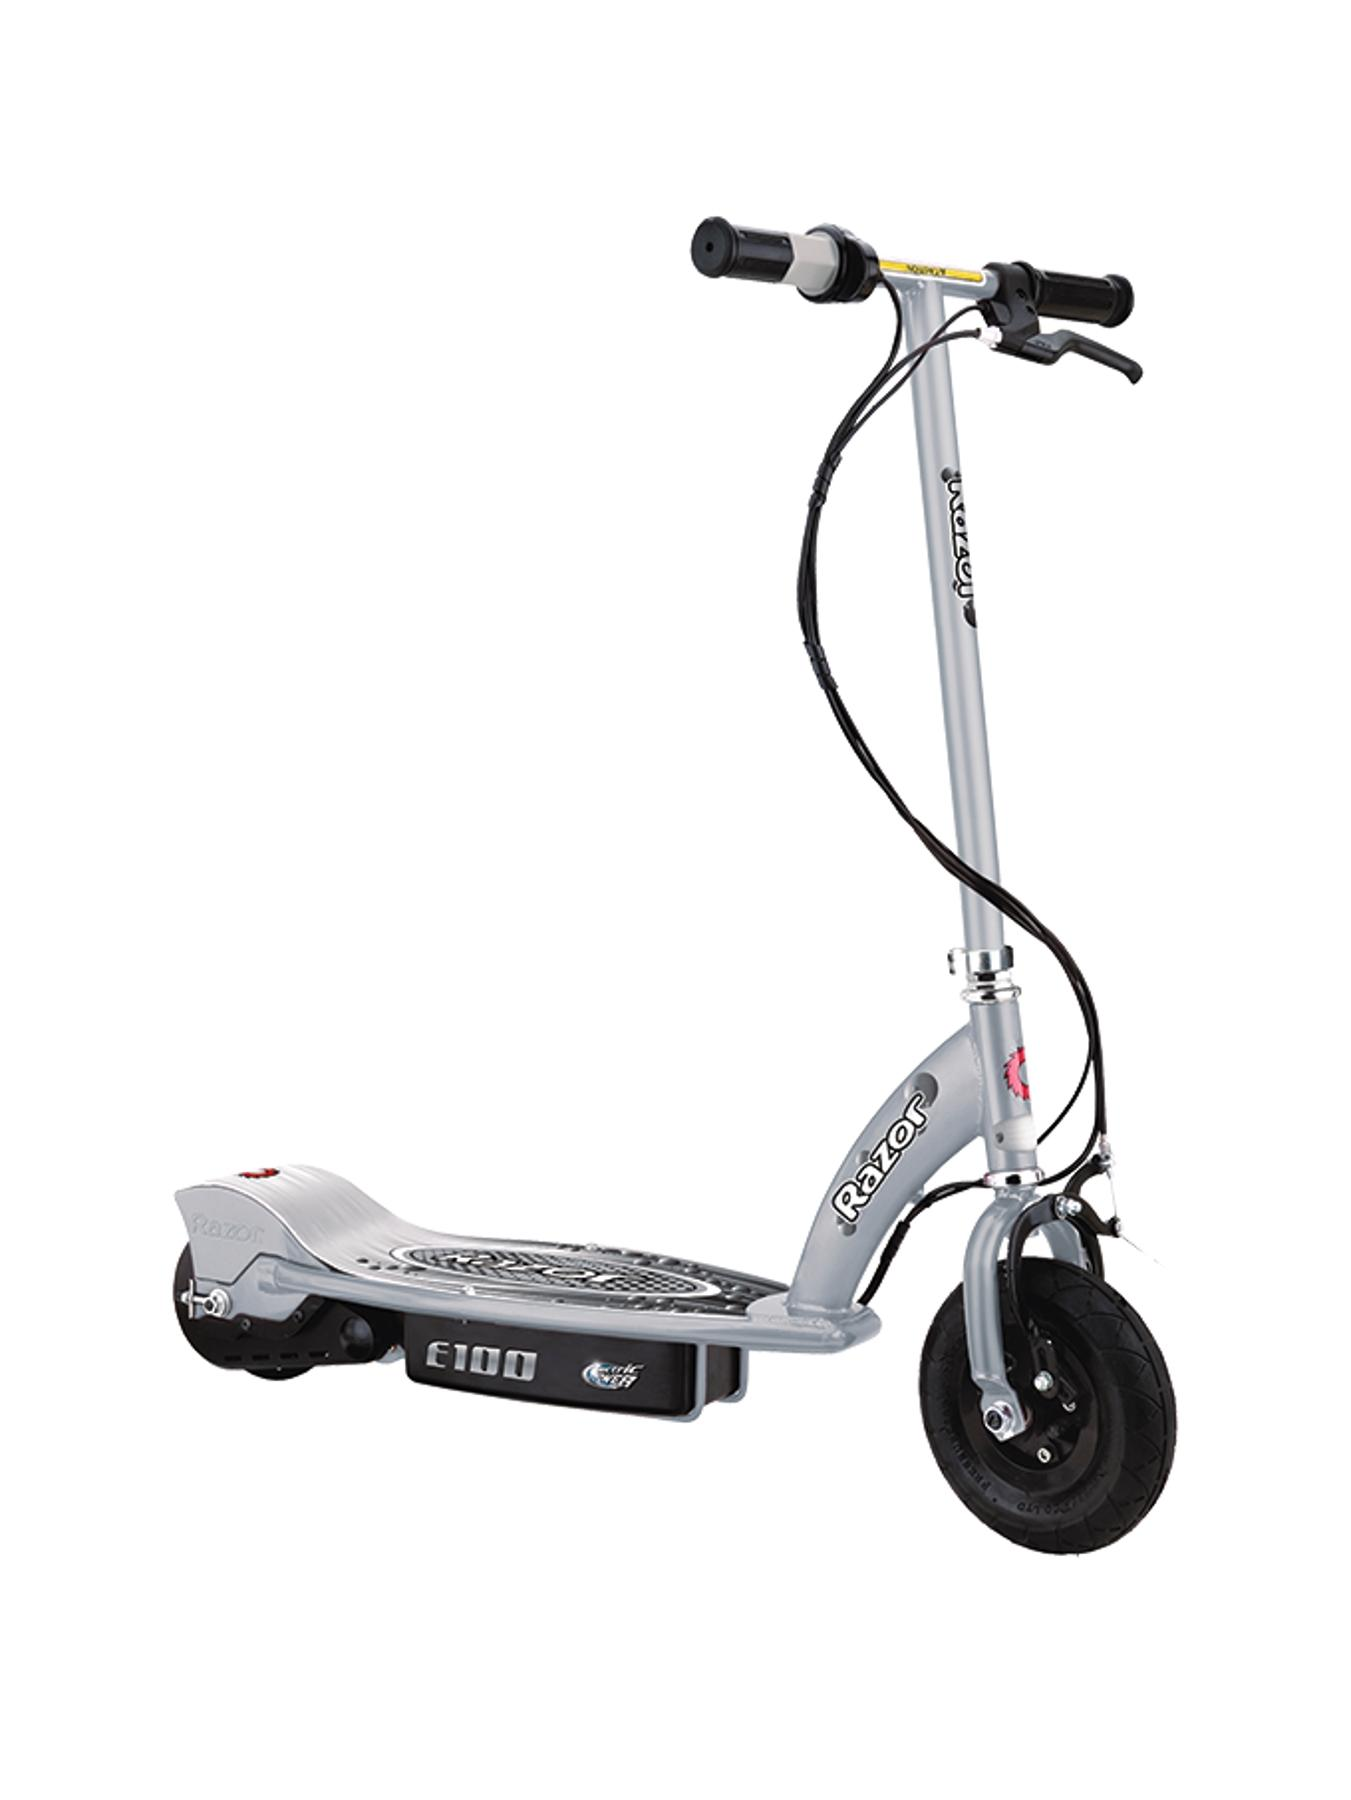 E100 Electric Scooter - Silver